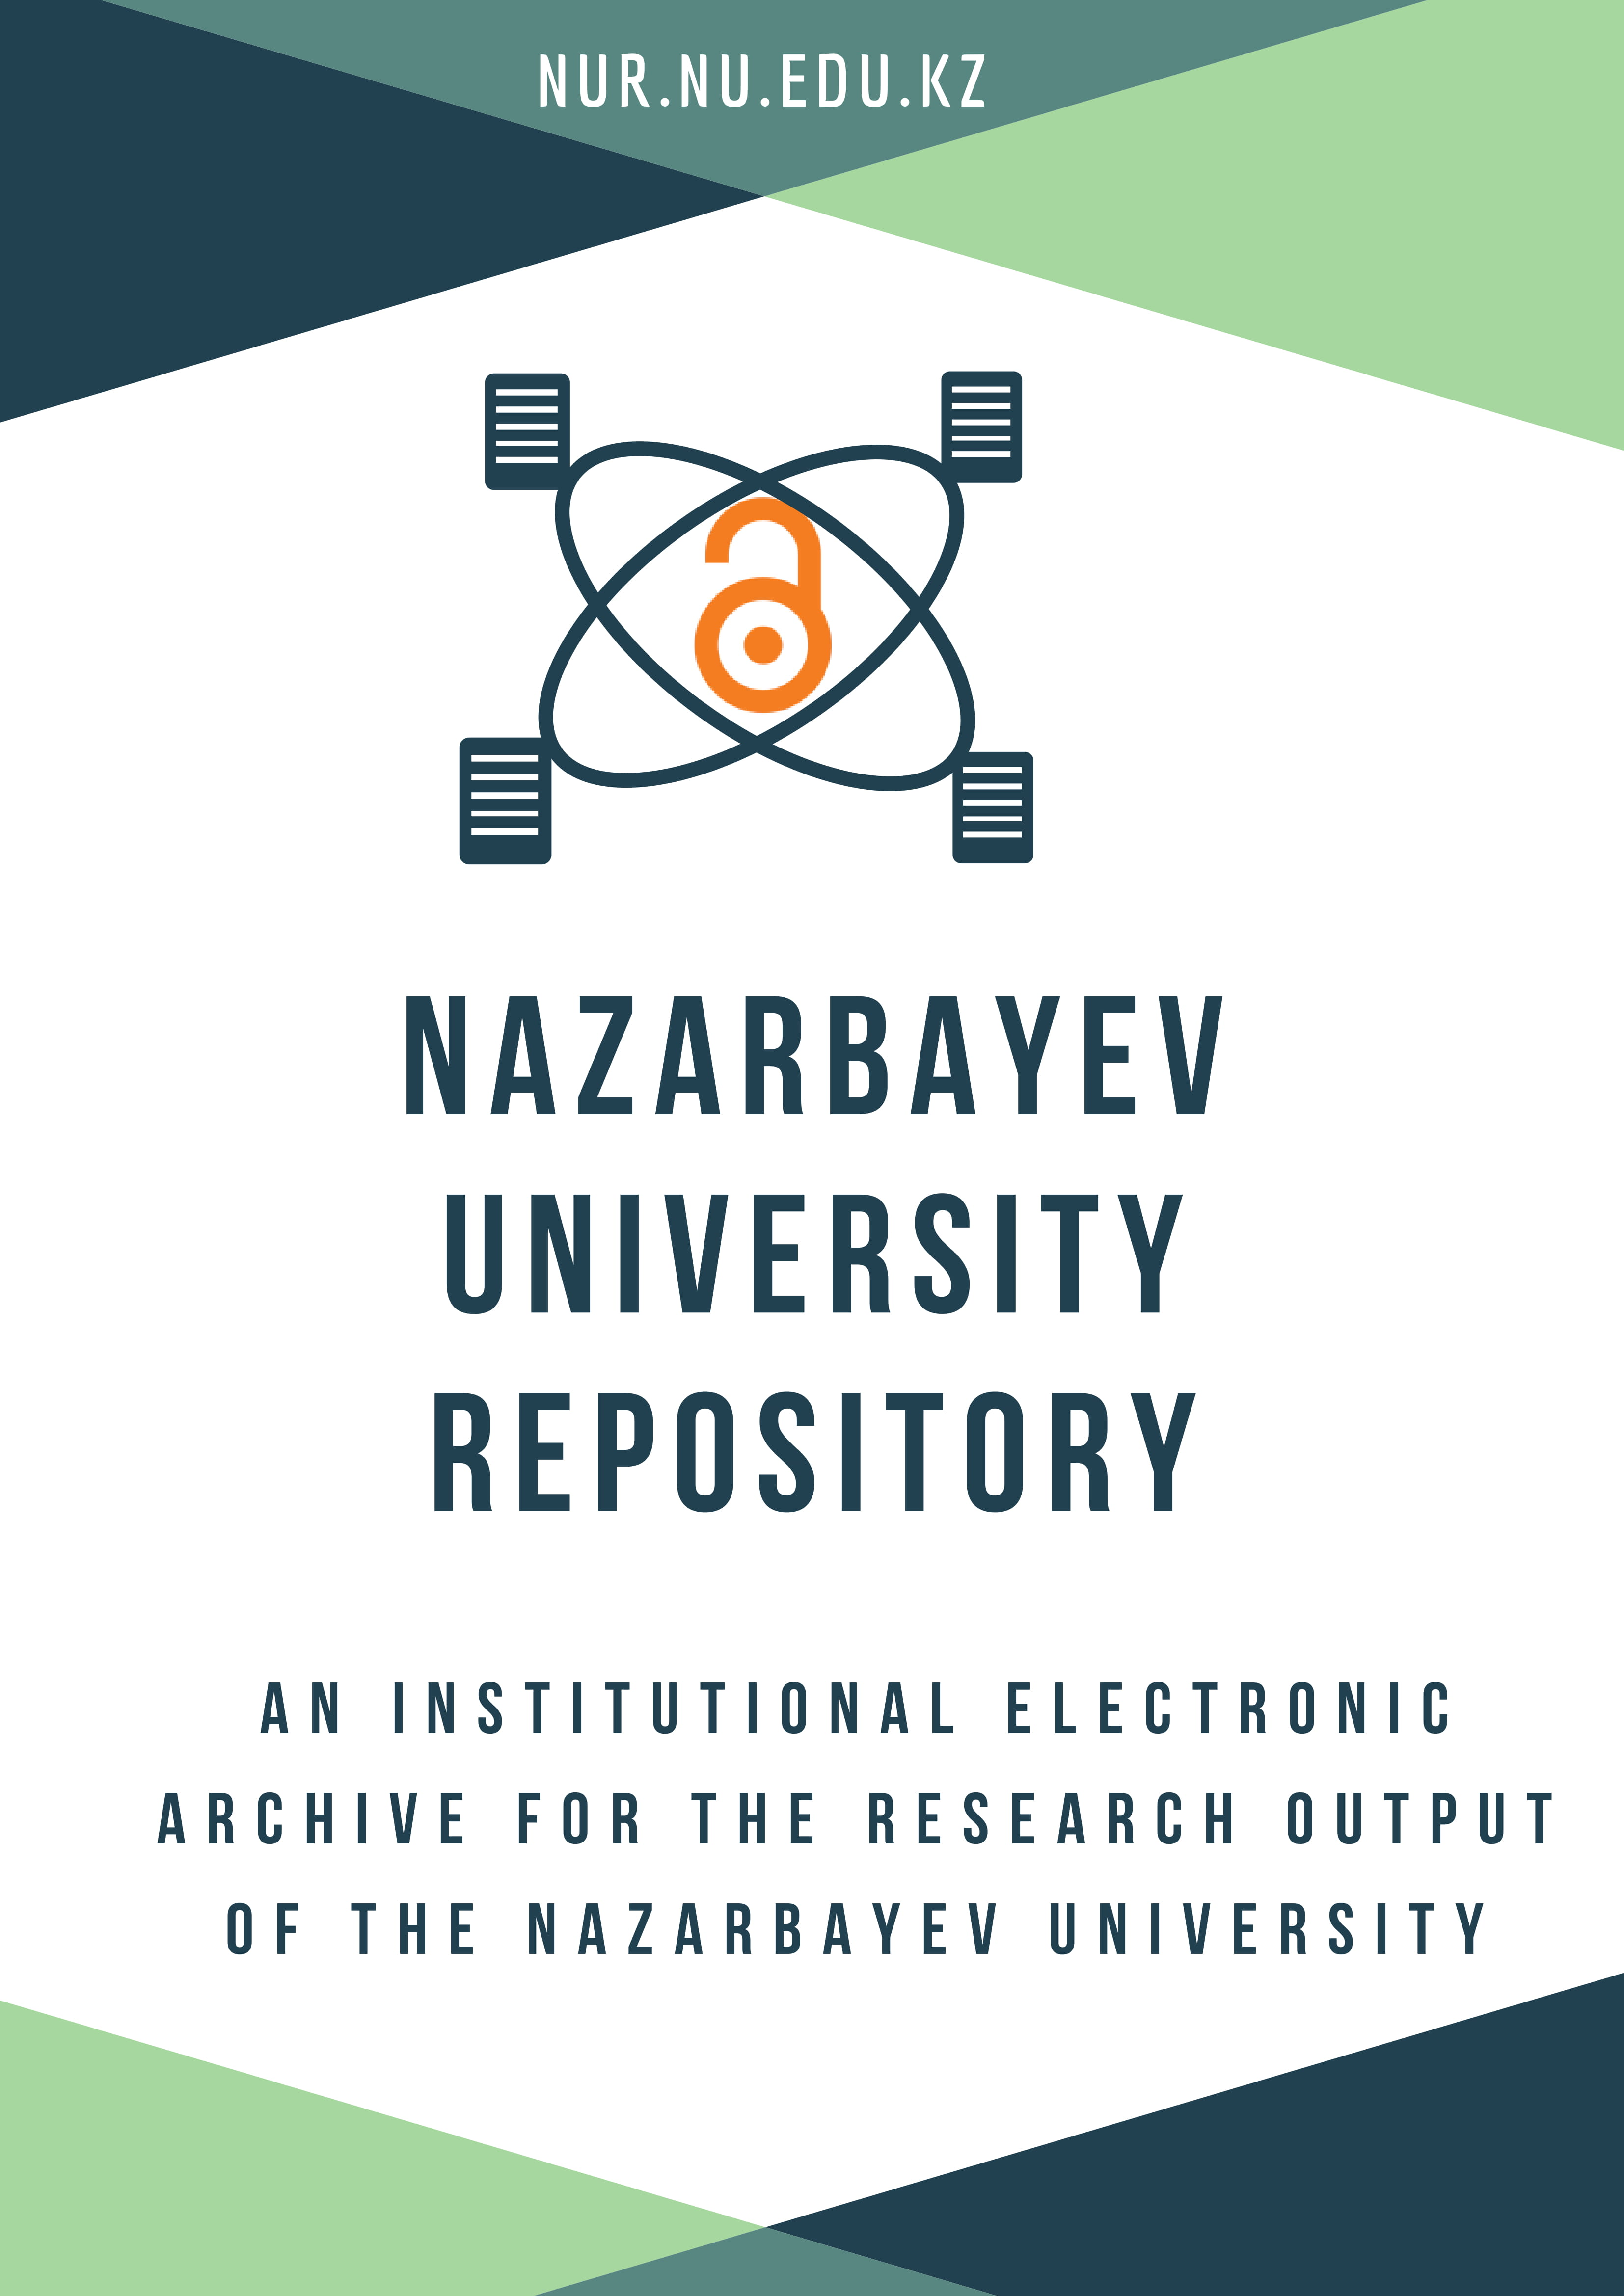 NUR405: Institutional Repository